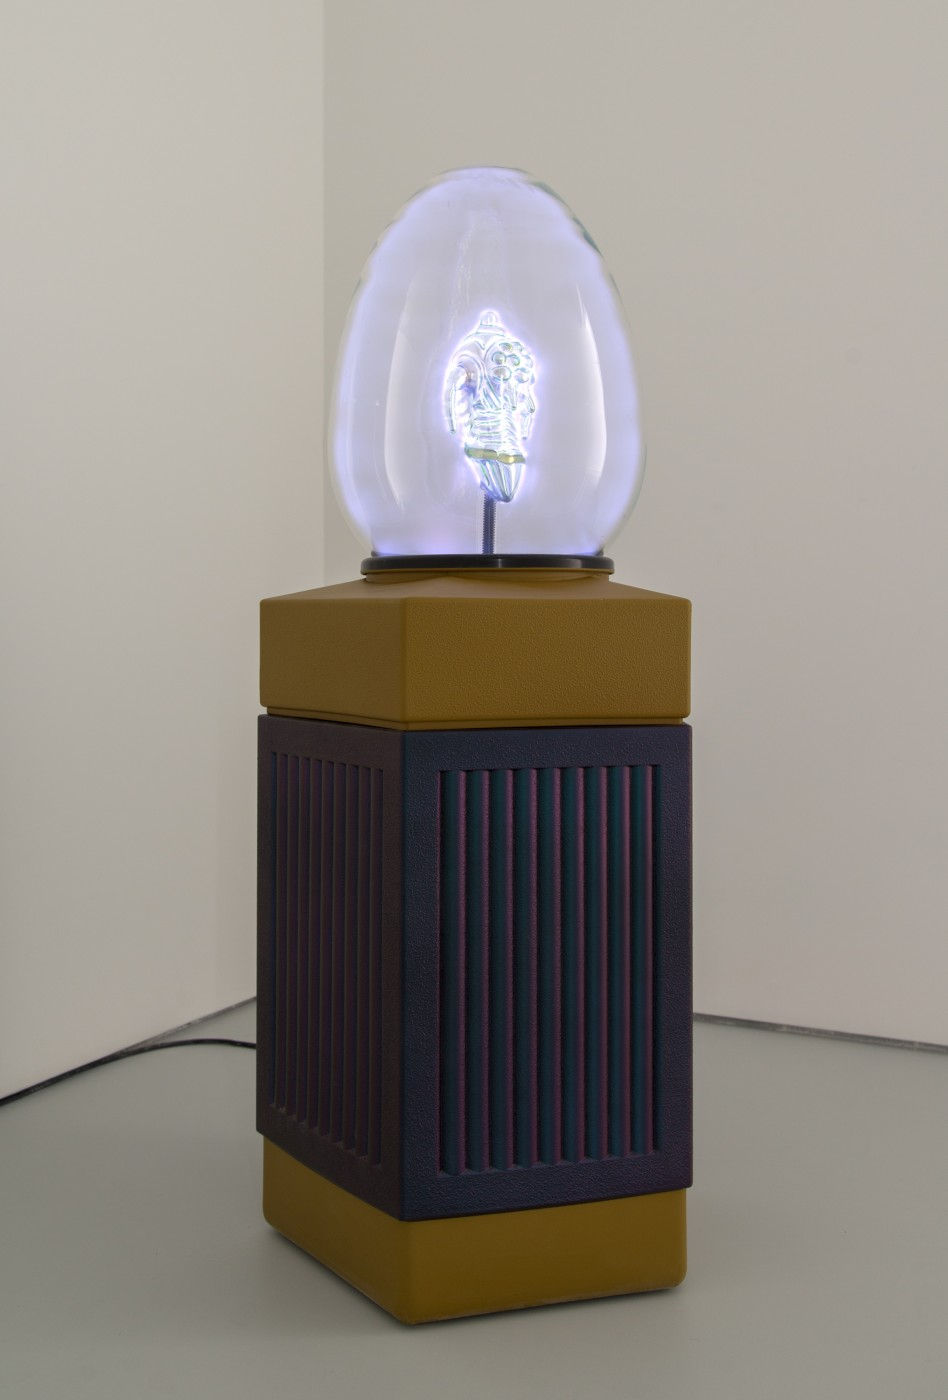 I&#8217;m Nobody! Max Hooper Schneider  Plasm(o)void 8 (Uranium Germ)</I>, 2017 Borosilicate oviform, Uranium glass sculpture, repurposed waste bin, noble gases, aluminum, rubber, and custom electronics 116 x 49 x 49 cm / 45.6 x 19.2 x 19.2 in